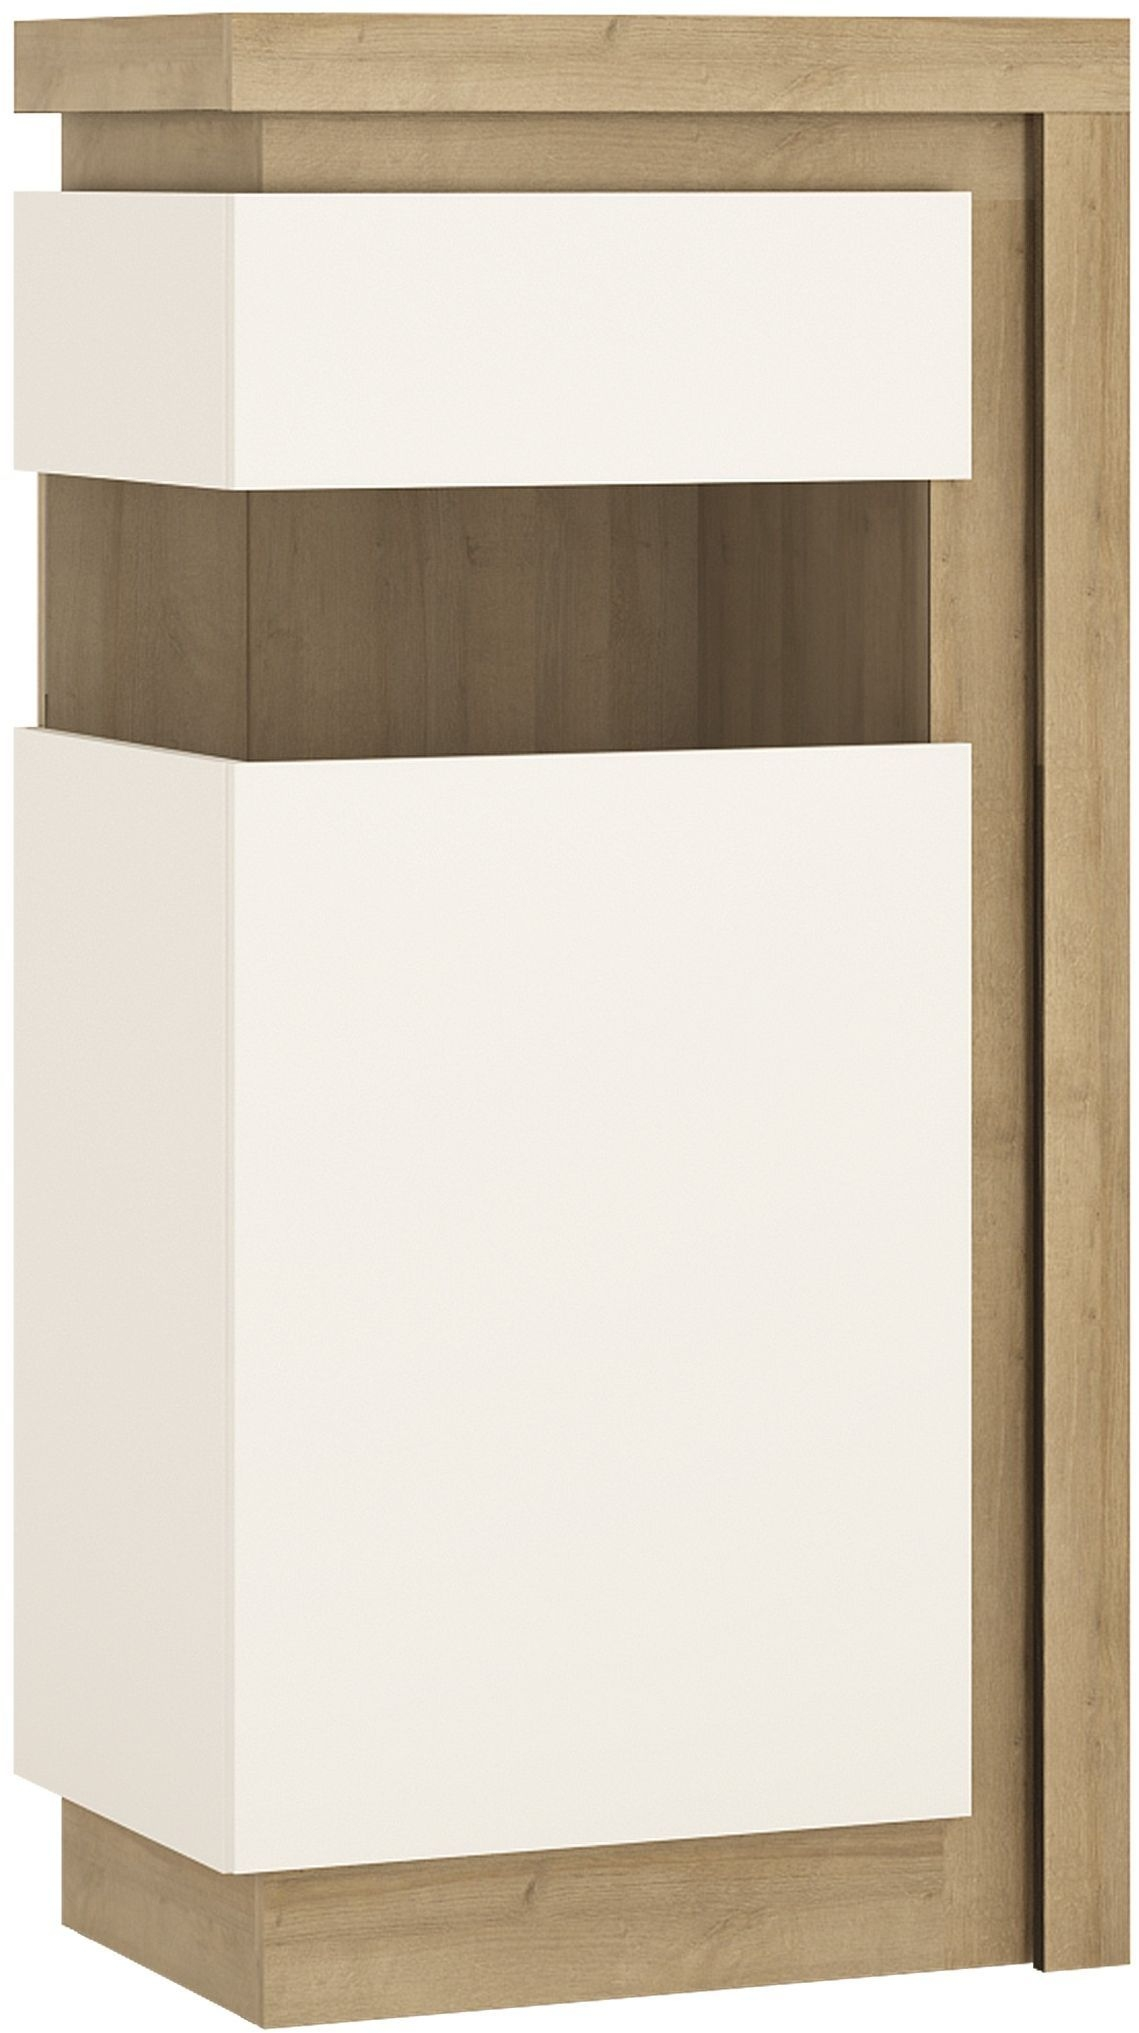 Lyon Riviera Oak and White High Gloss Display Cabinet - Small Narrow Left Hand (Including Led Lighti